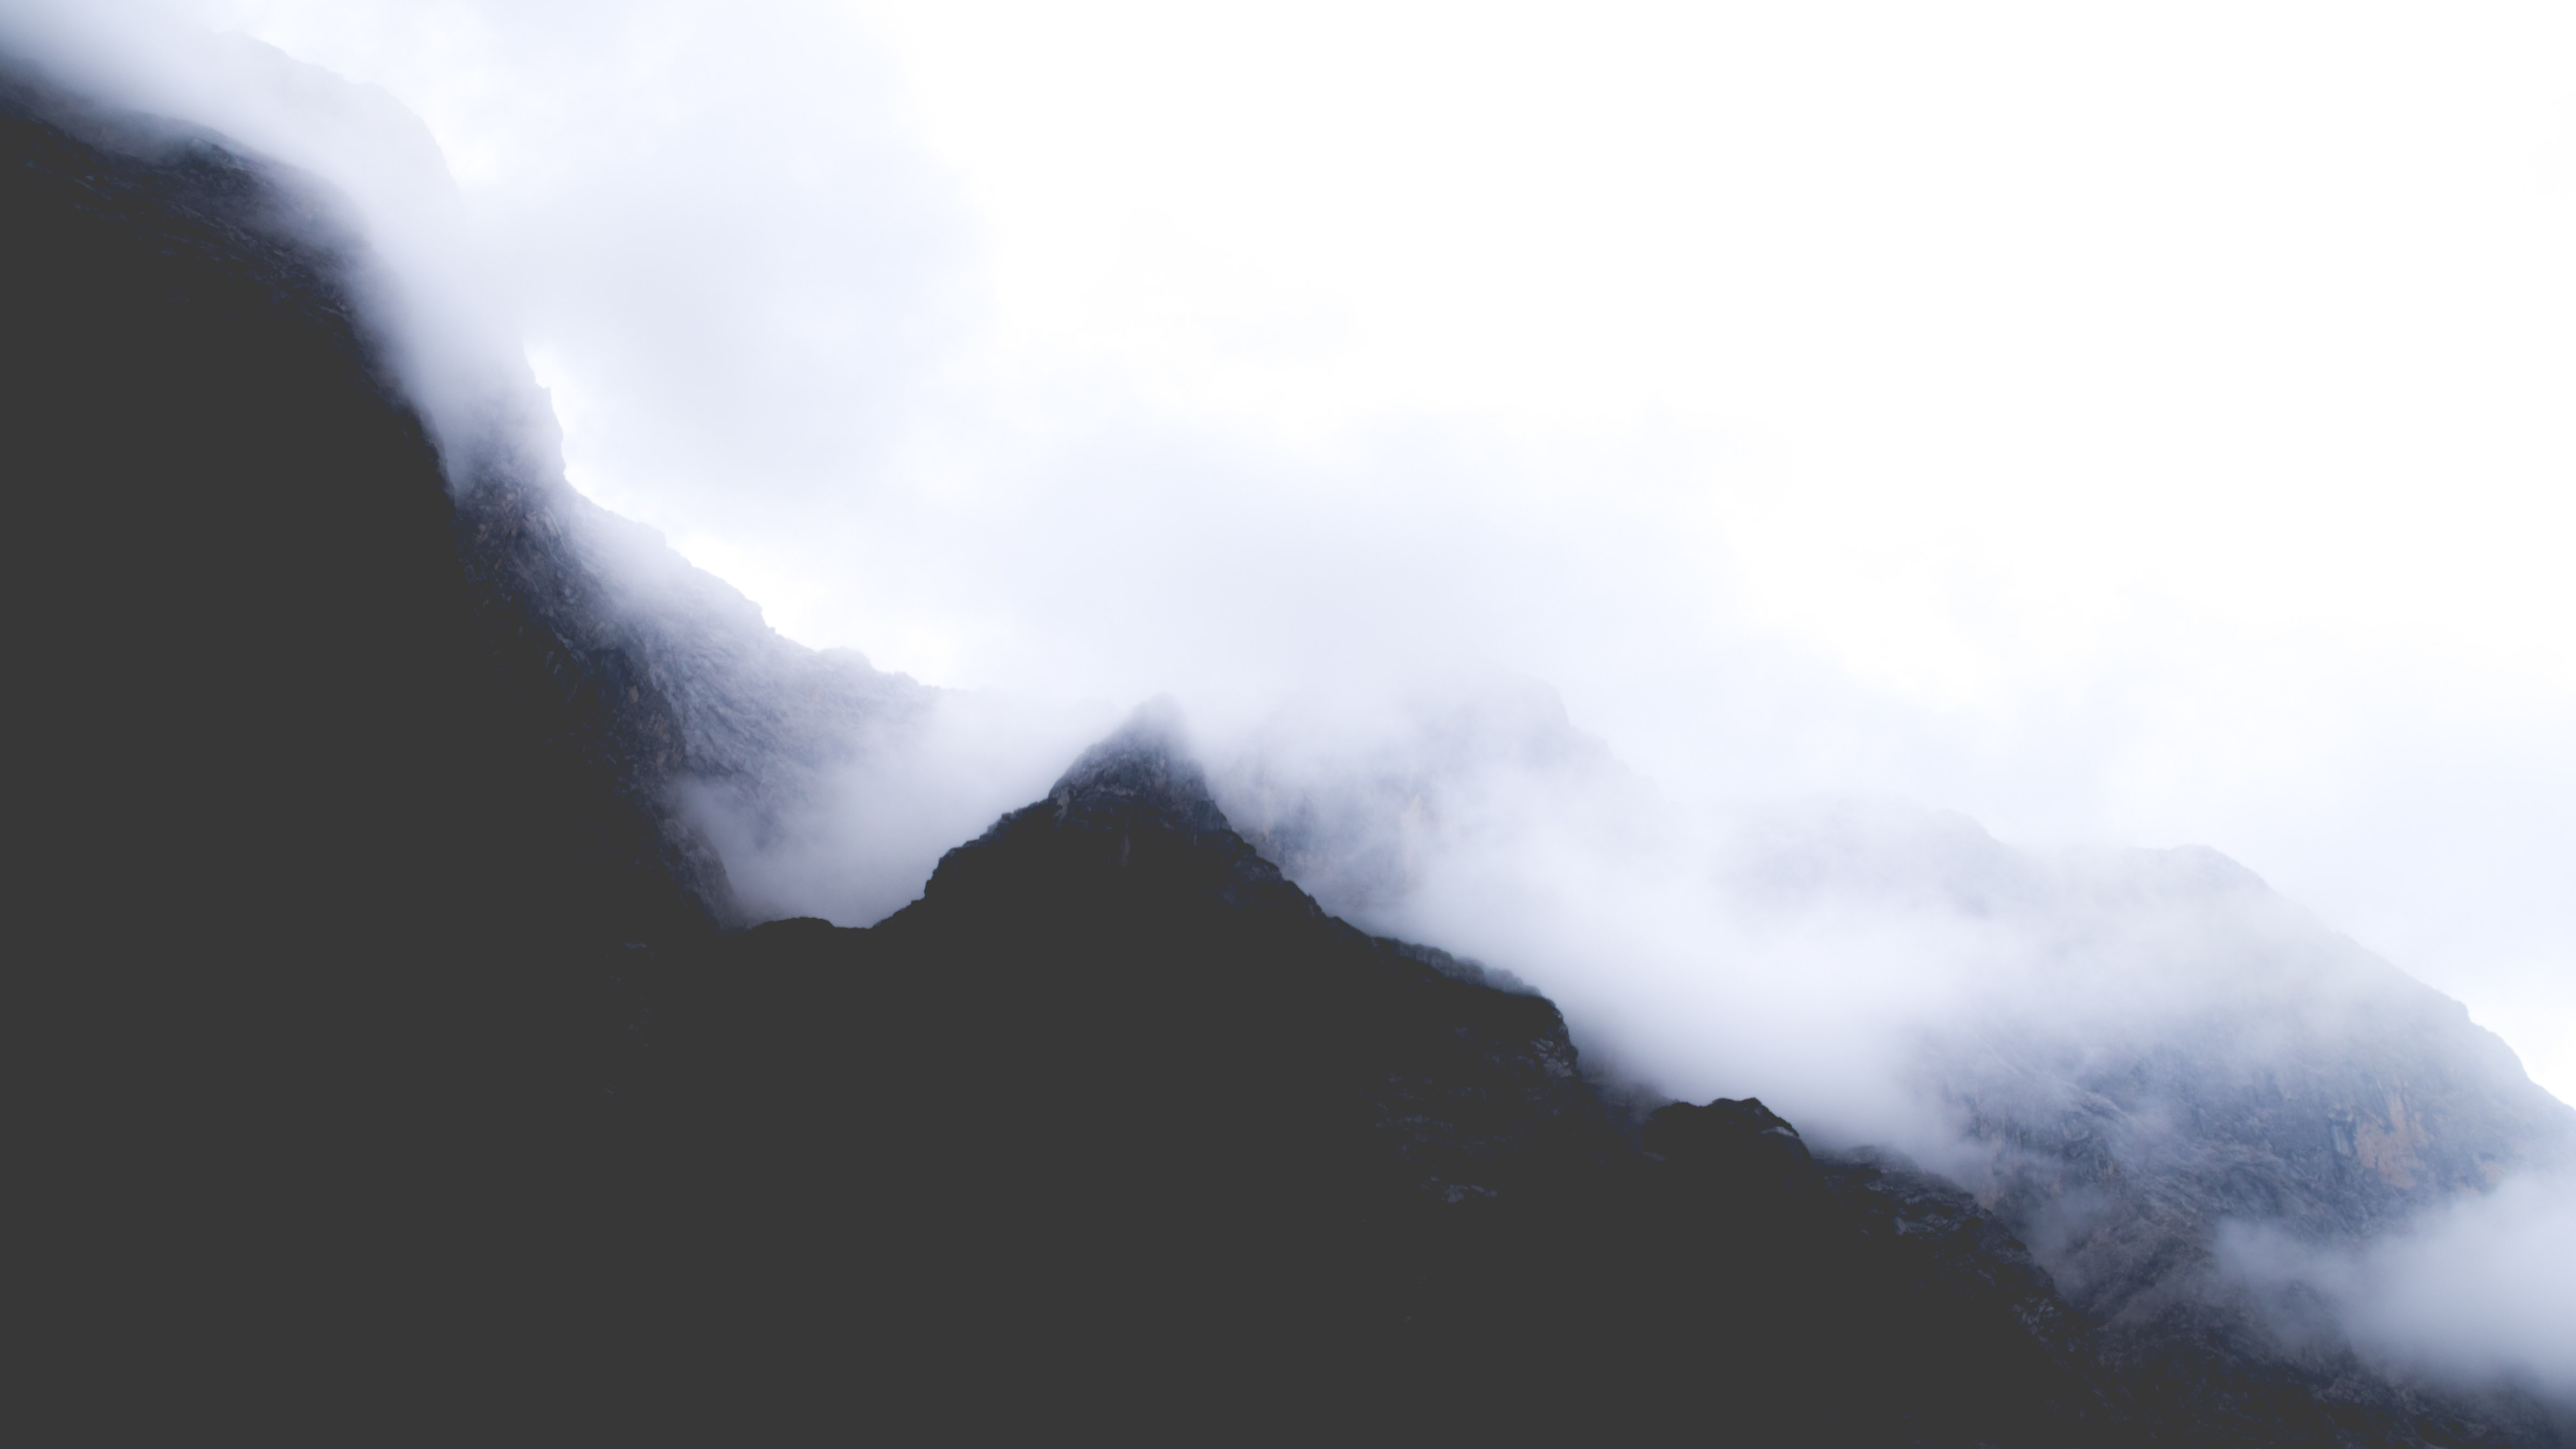 Silhouettes of mountains disappear in the mist of a cloudy morning